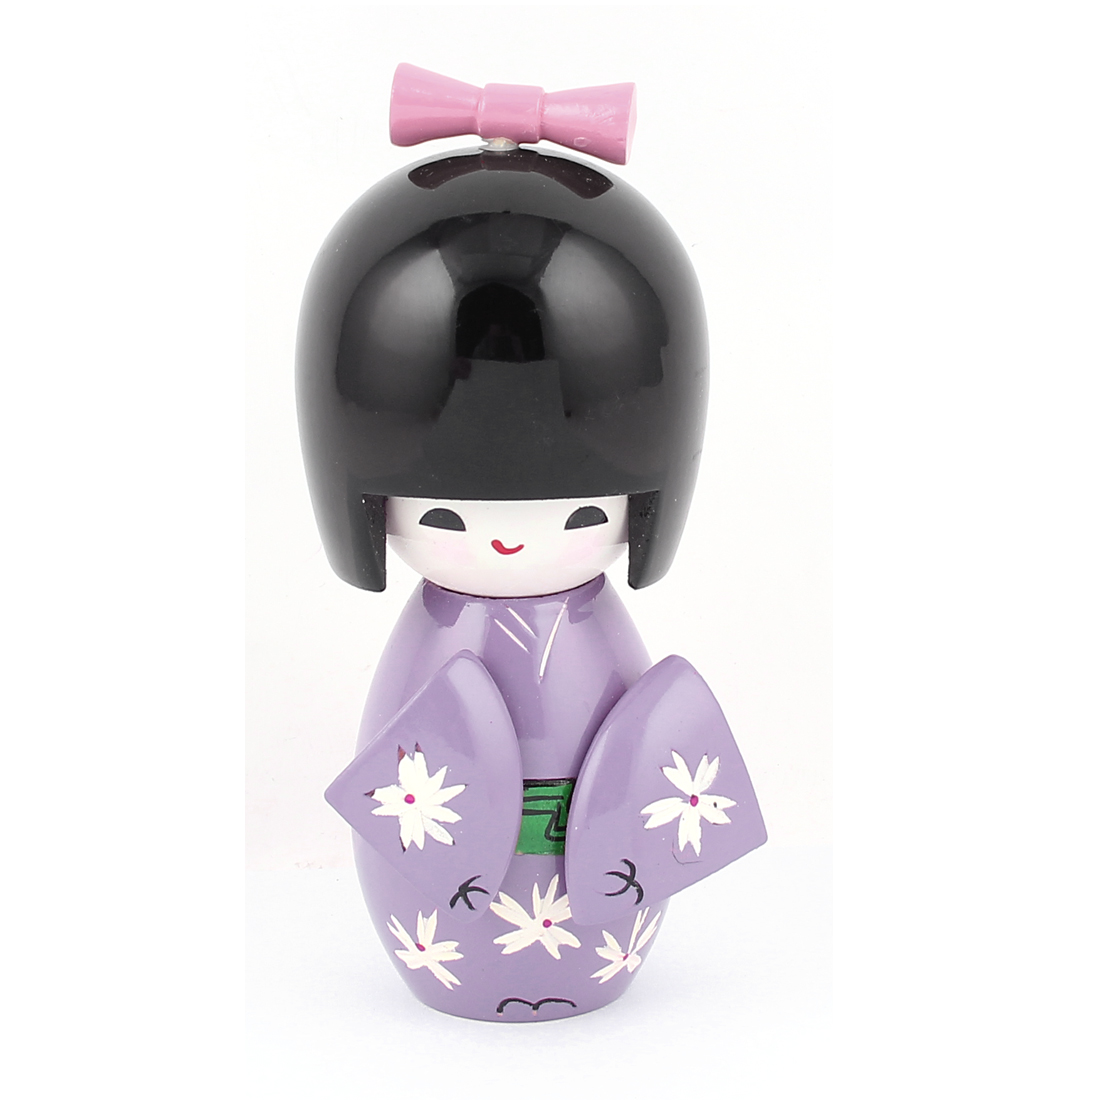 Flower Printed Light Purple Kimono Black Head Wooden Kokeshi Doll